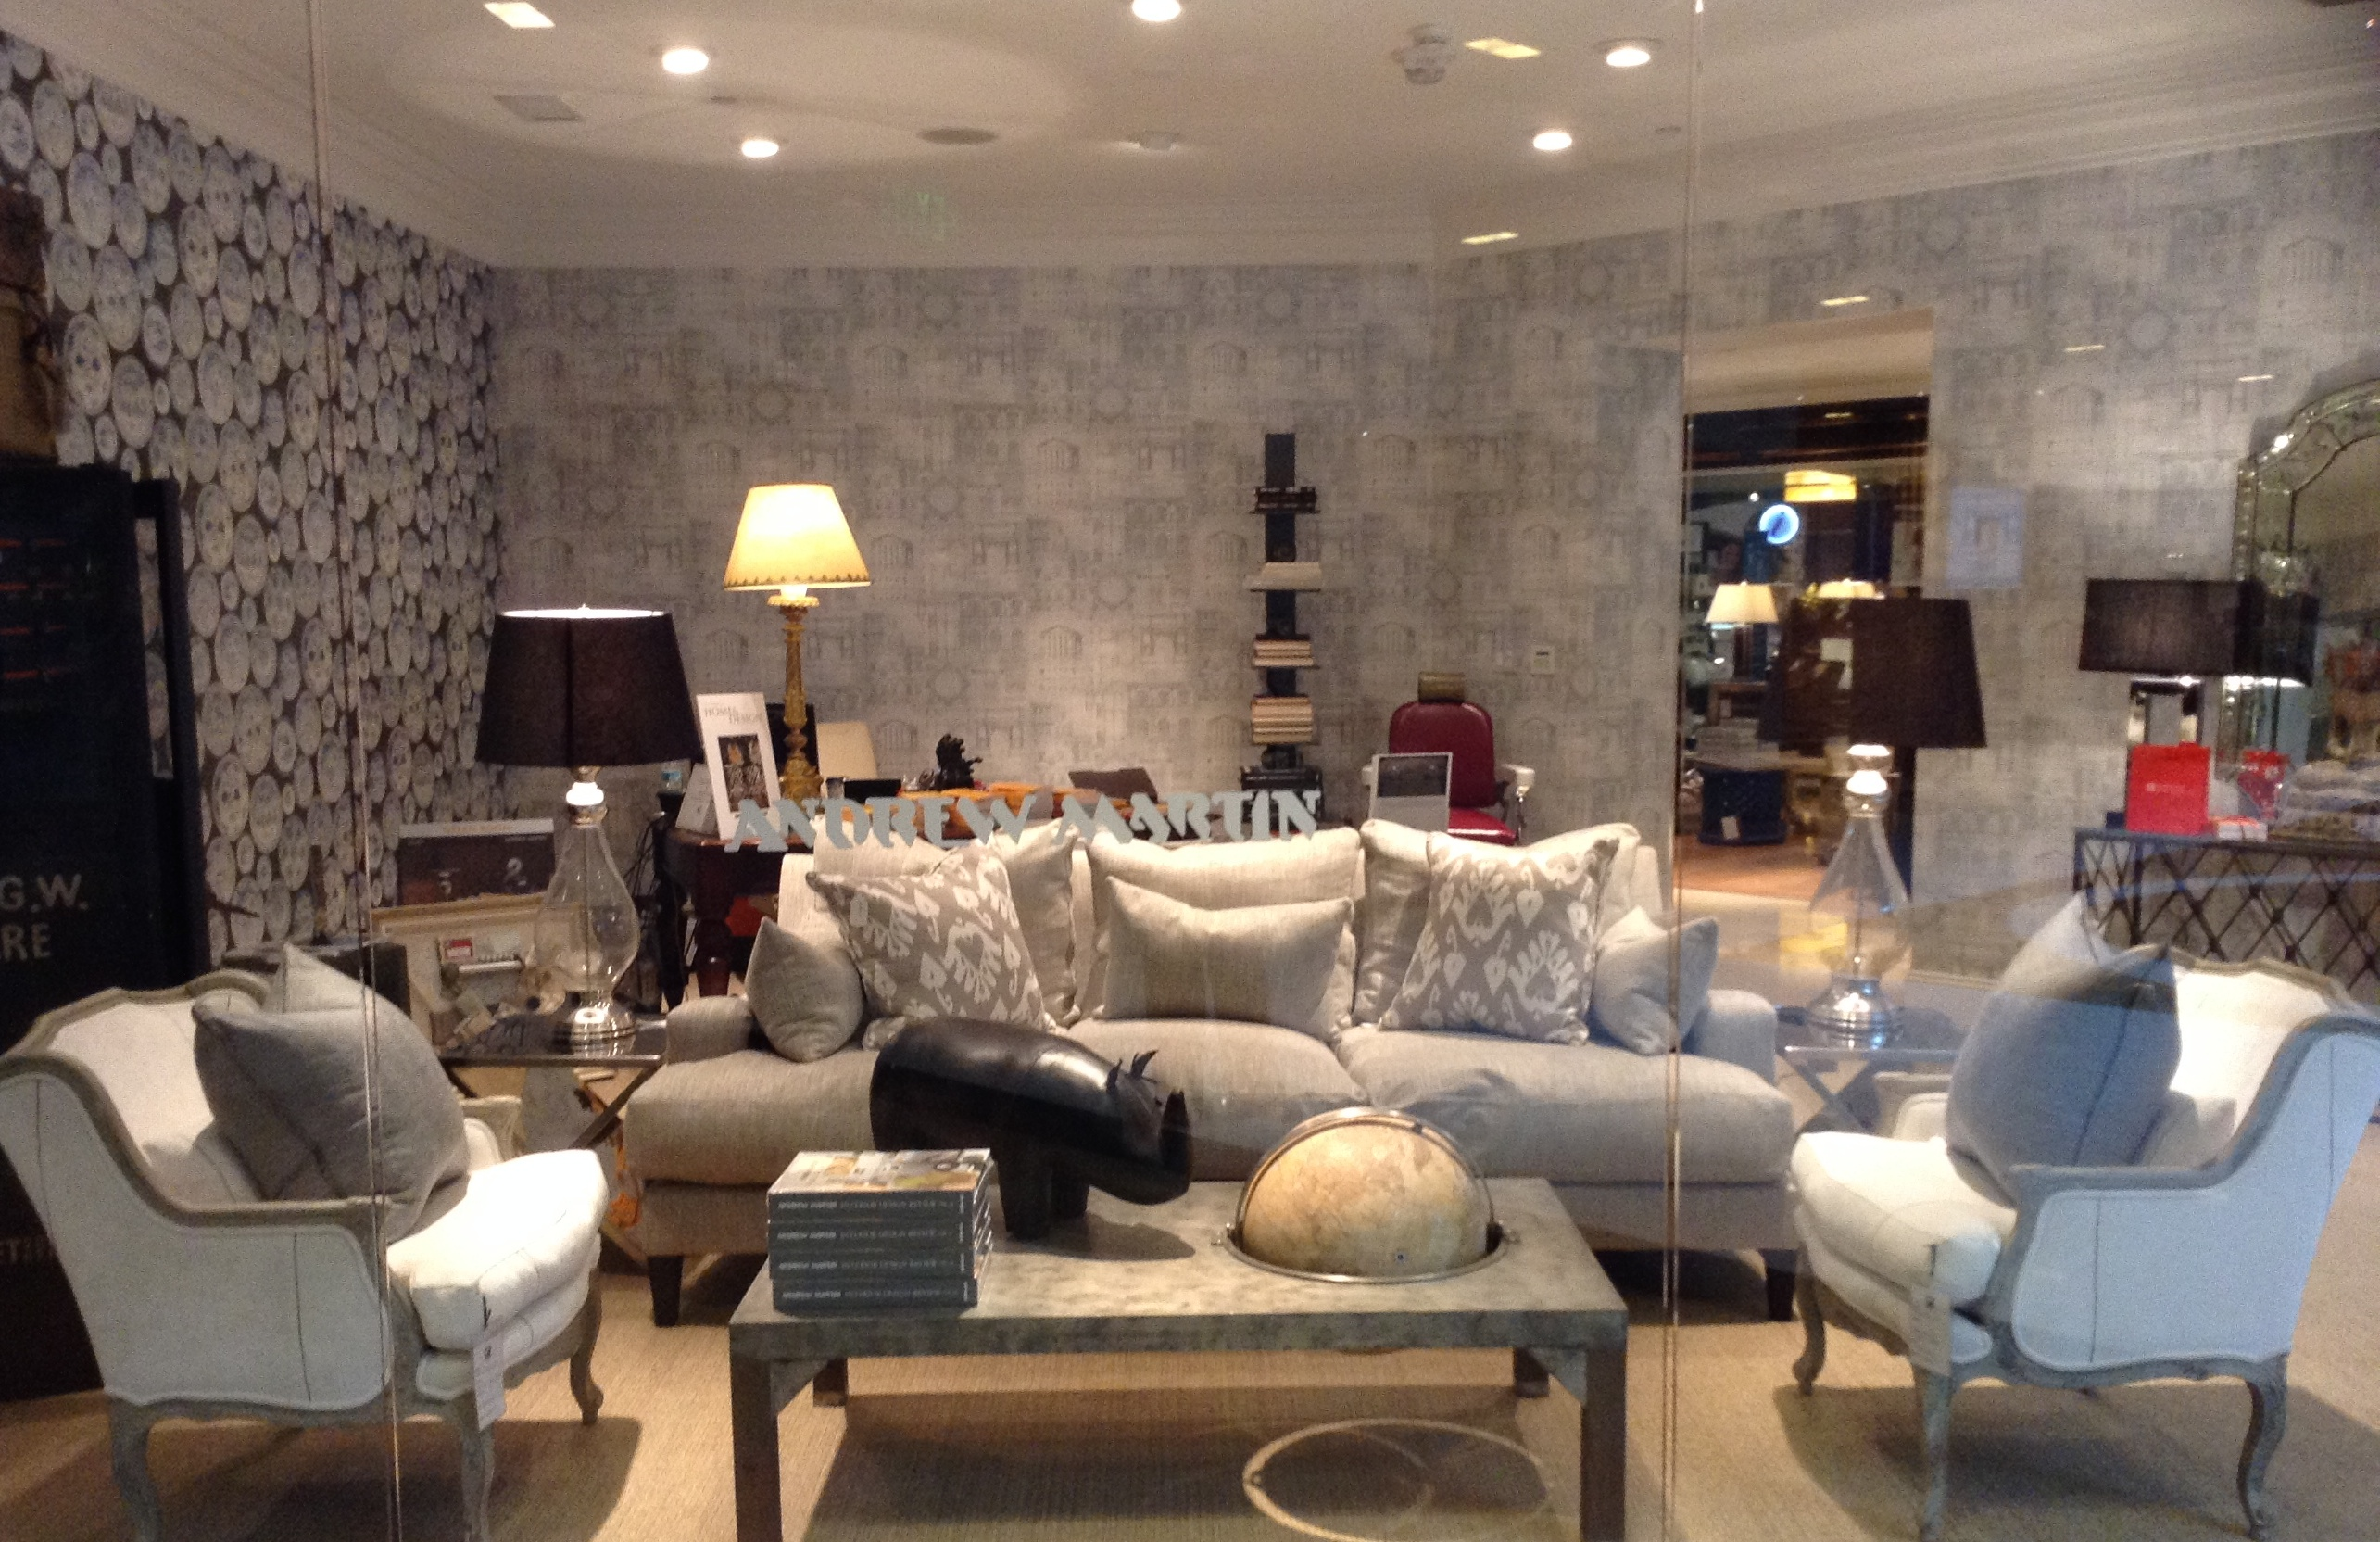 ens-Sofa-with-pillows-in-our-Giza-taupe-fabric-Pair-of-Alfred-Chairs-surrounding-Andrew-Marti-wallpaper-wp5604377